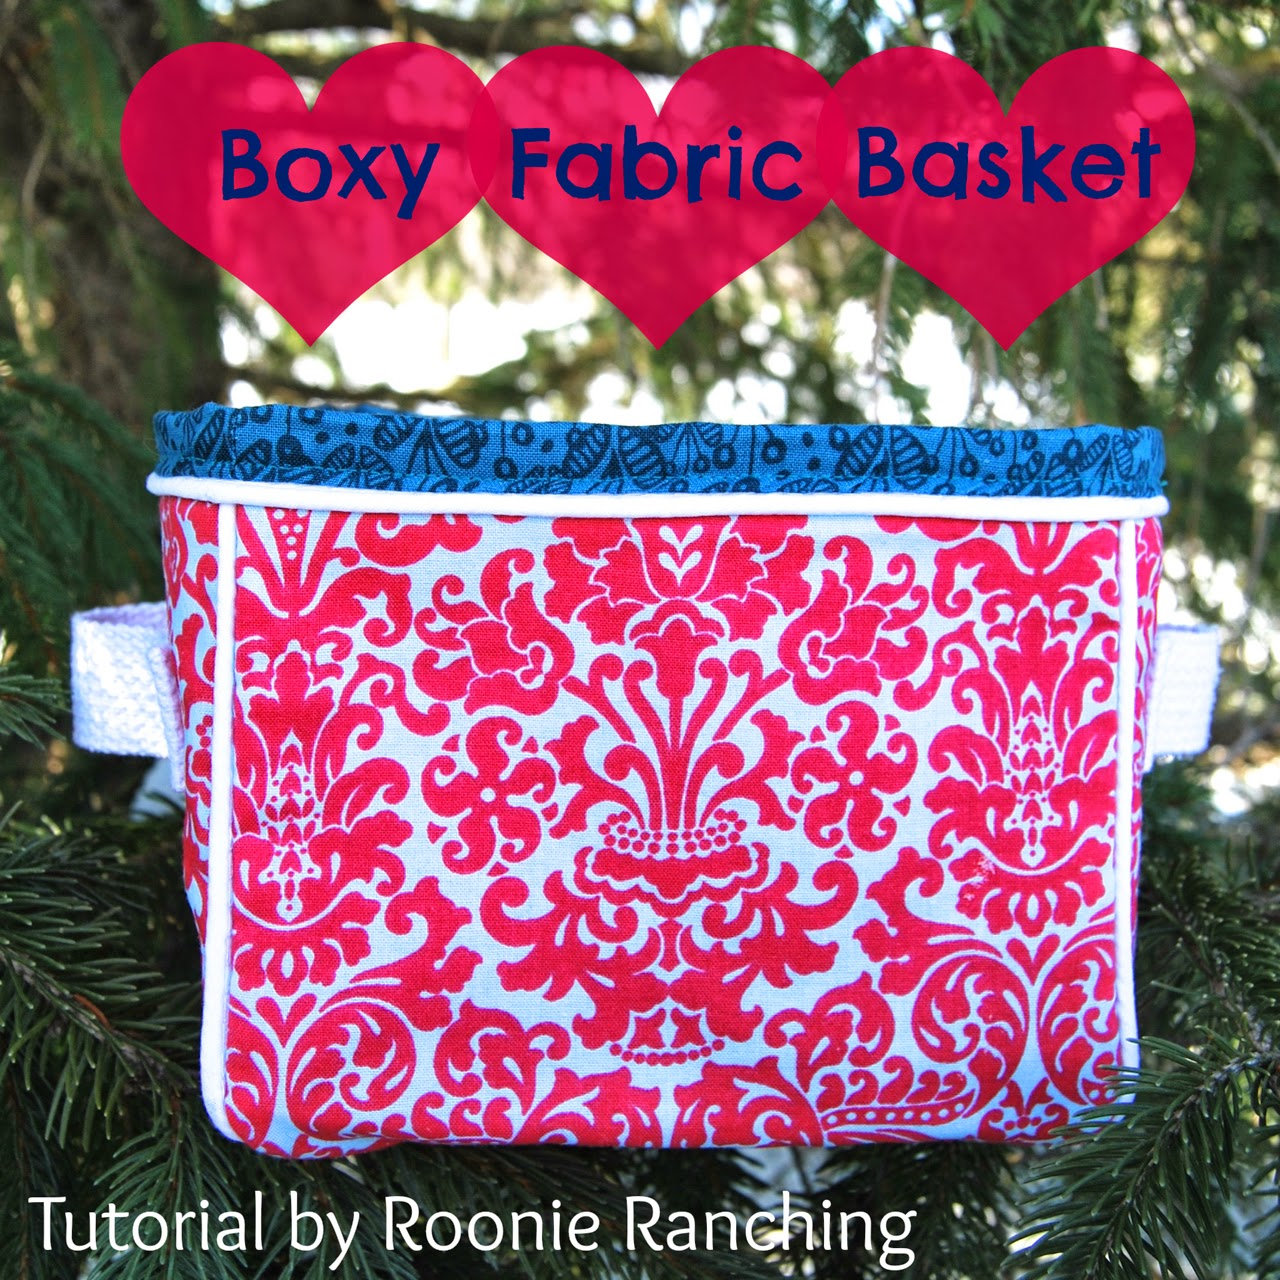 Boxy Fabric Basket -- sewing tutorial by Roonie Ranching